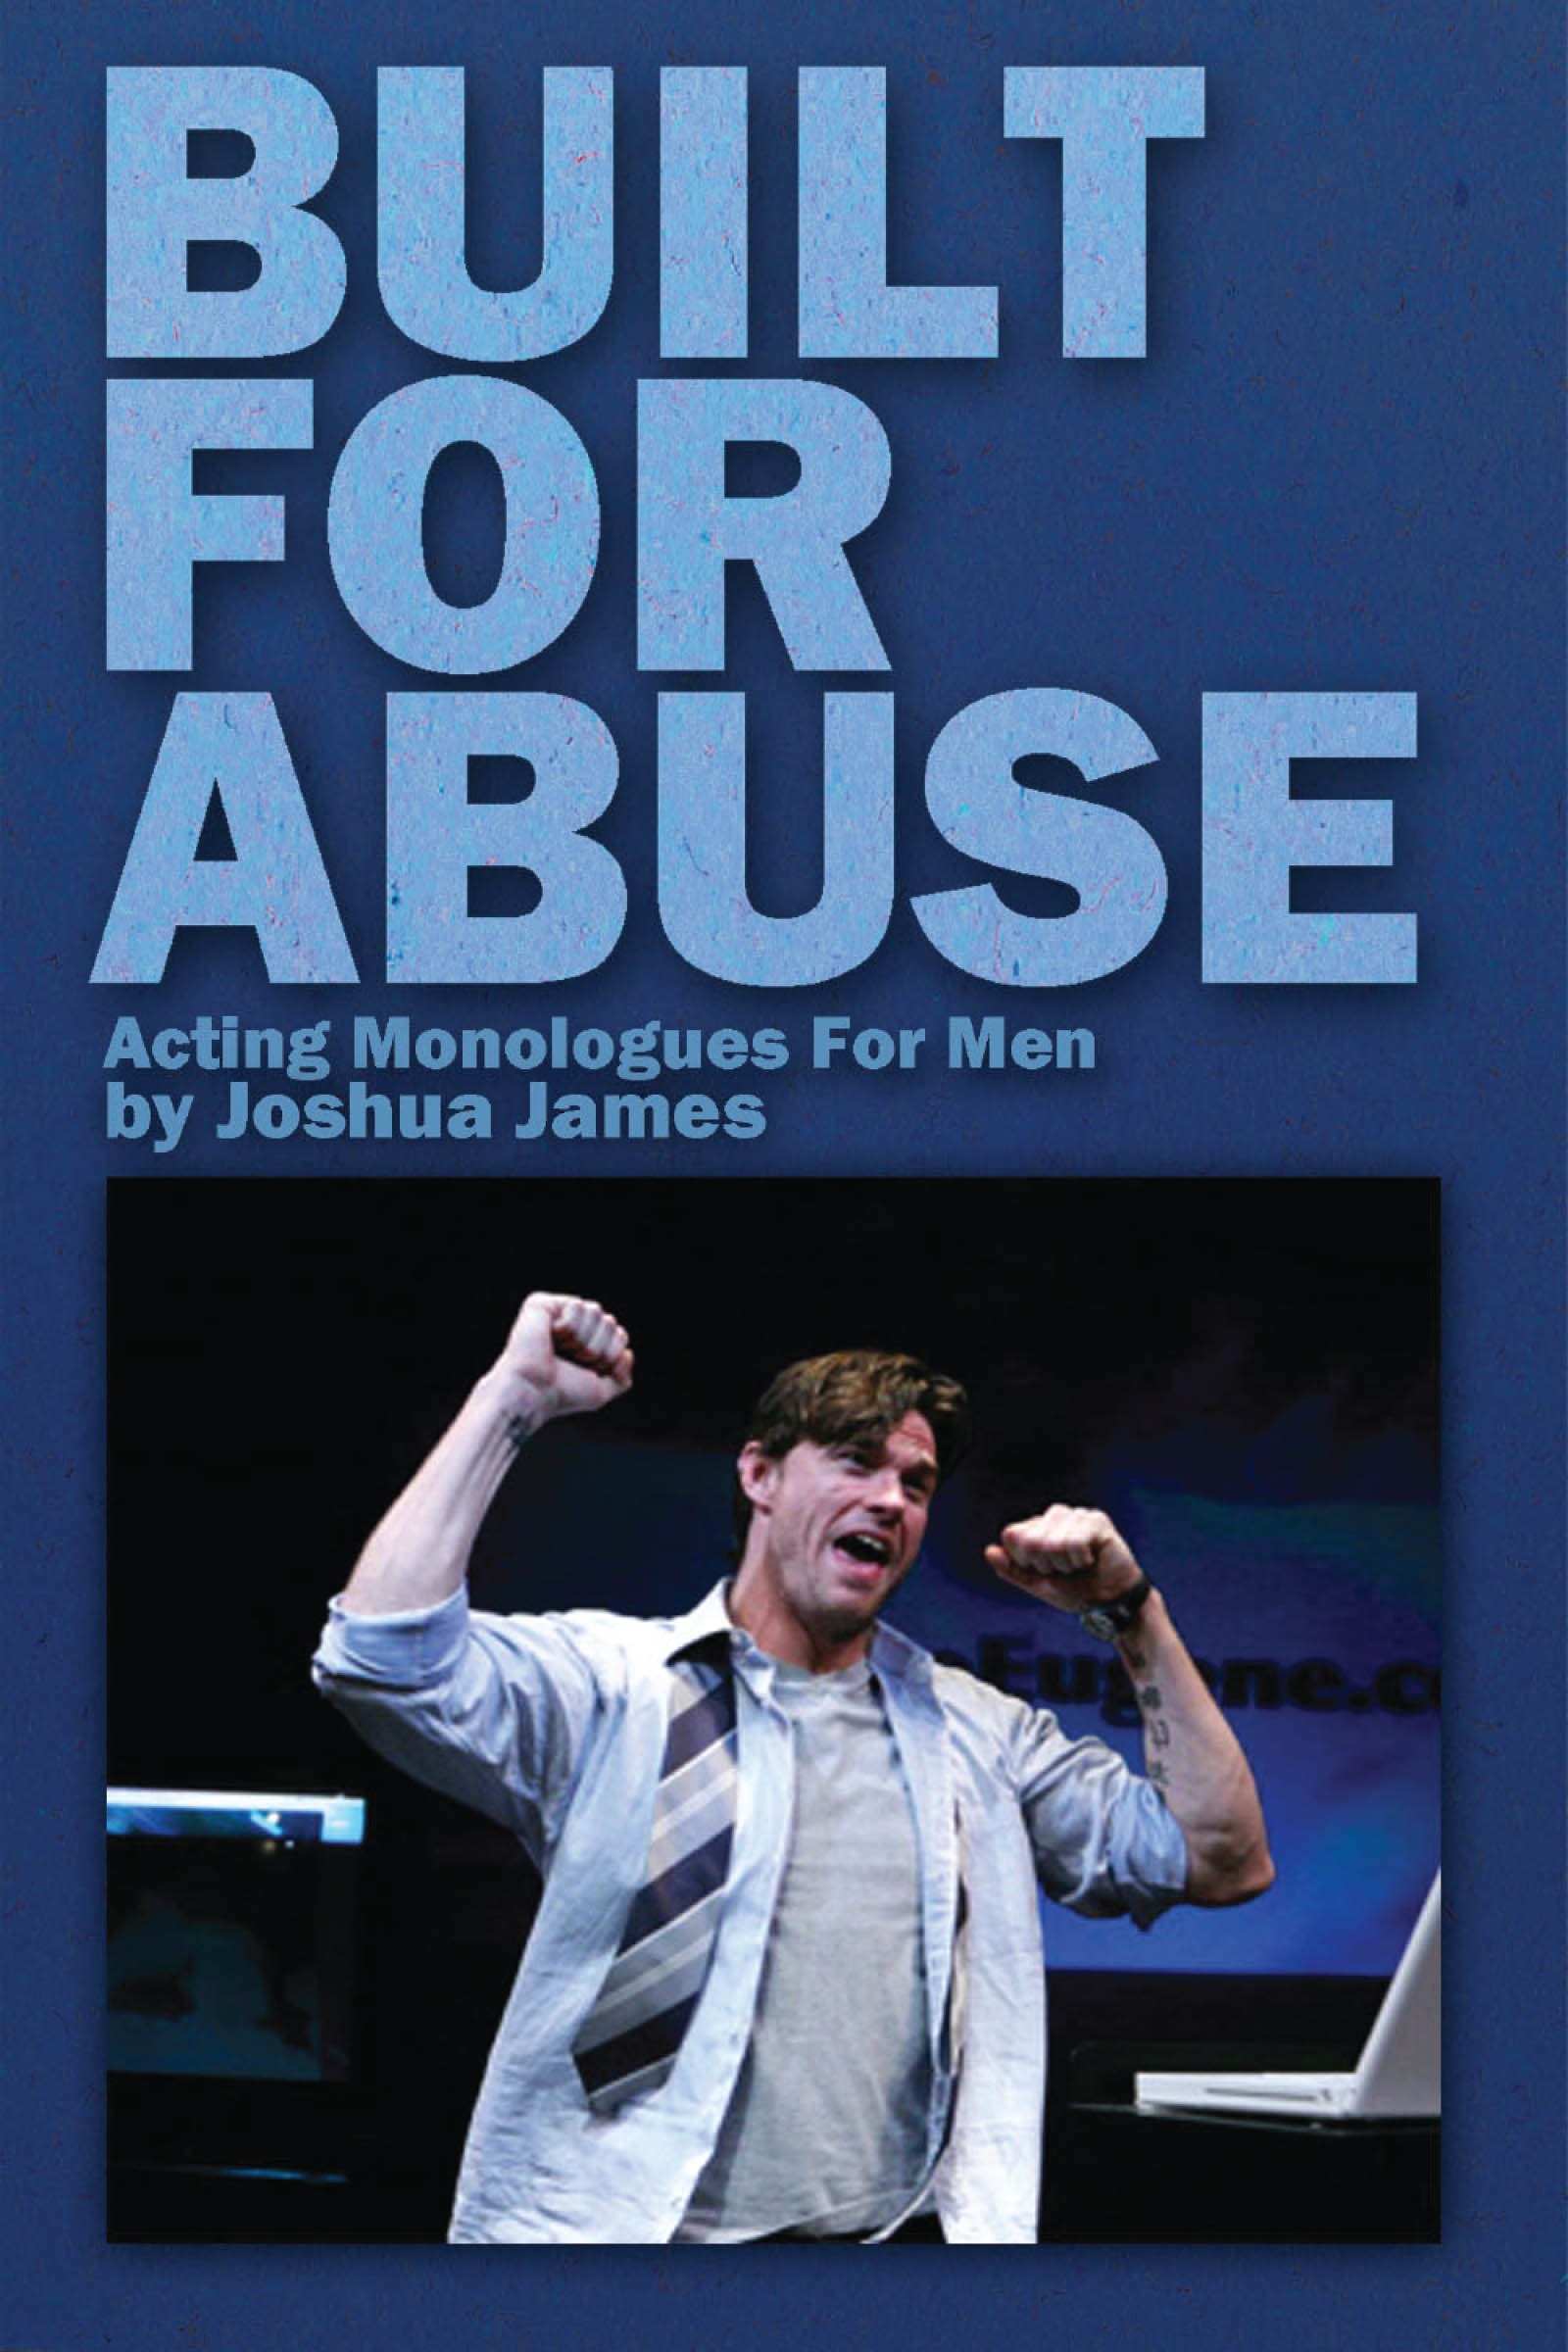 Built For Abuse: Acting Monologues For Men